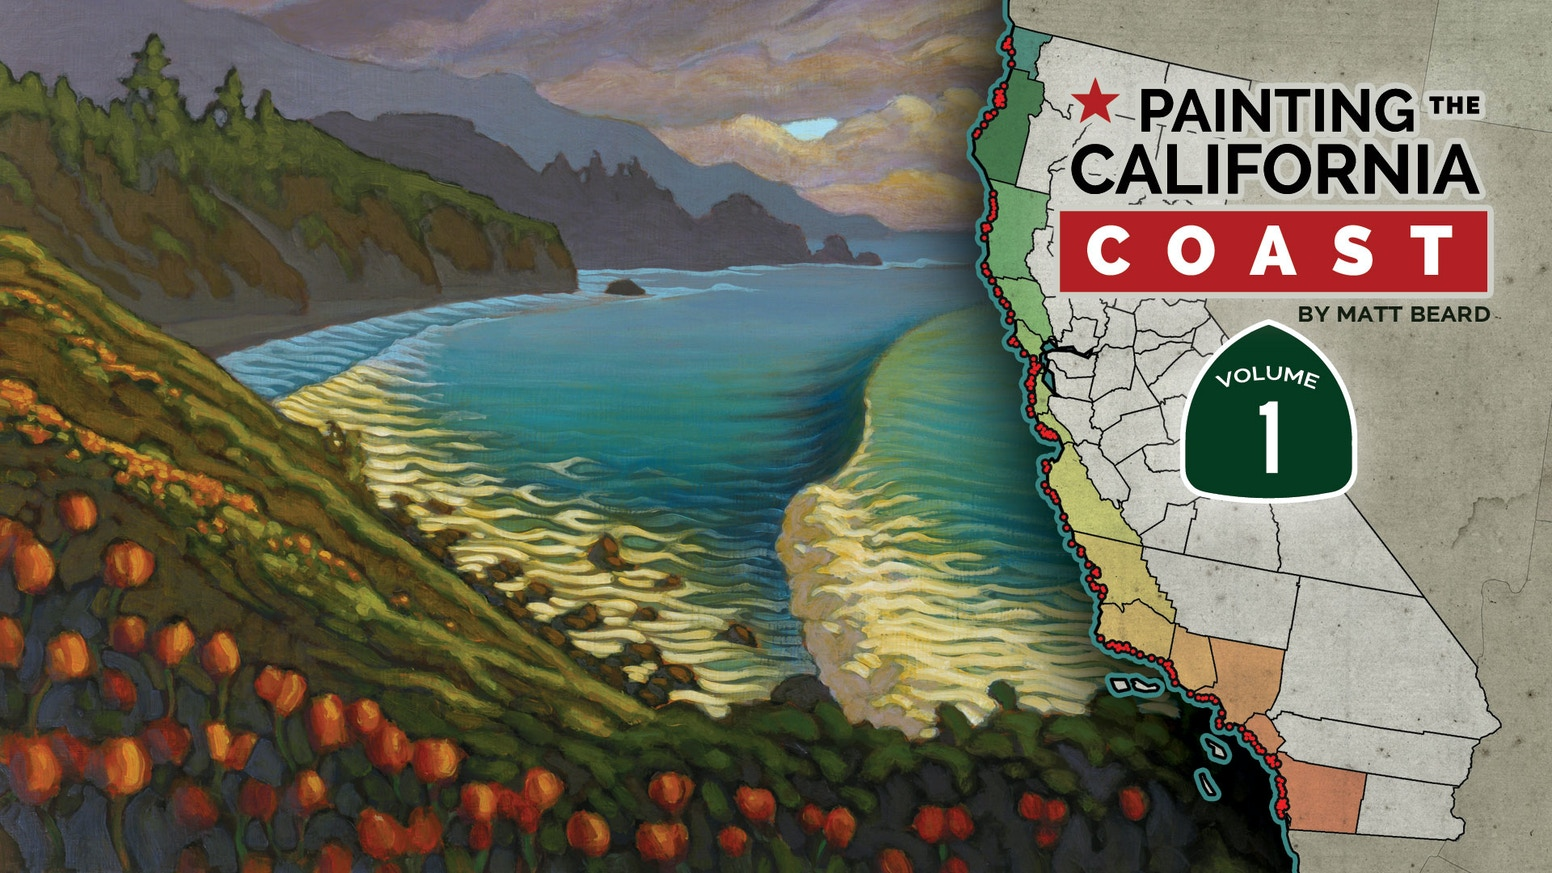 Painting the California Coast: Volume One is the top crowdfunding project launched today. Painting the California Coast: Volume One raised over $40459 from 395 backers. Other top projects include Savage Impressions: The Book, Seva Foods Vegan Organic Space Ice Kream and Coconut Jerky, The Alice Howell DVD project - 11 rare silent comedies...